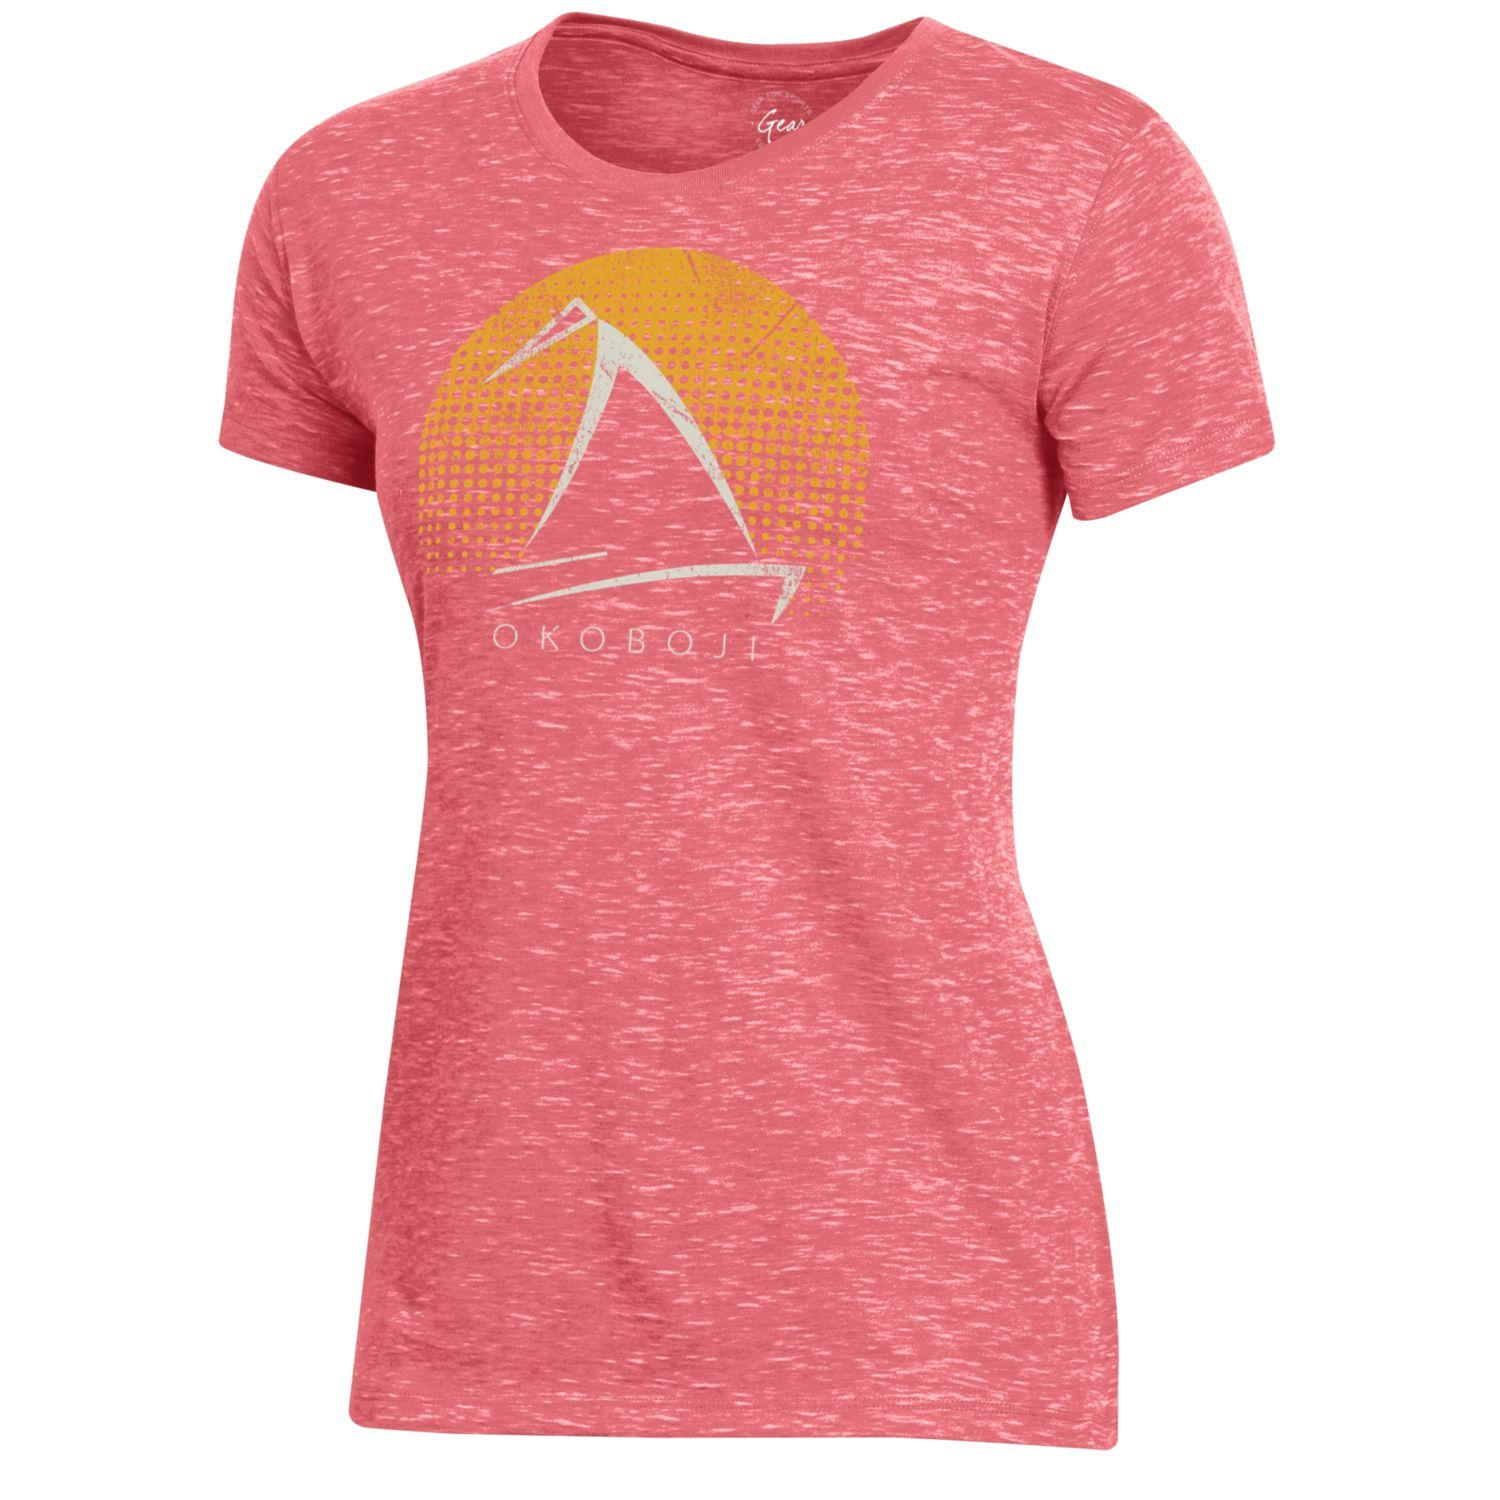 Ladies Okoboji Fireside Tee - Coral Sunrise